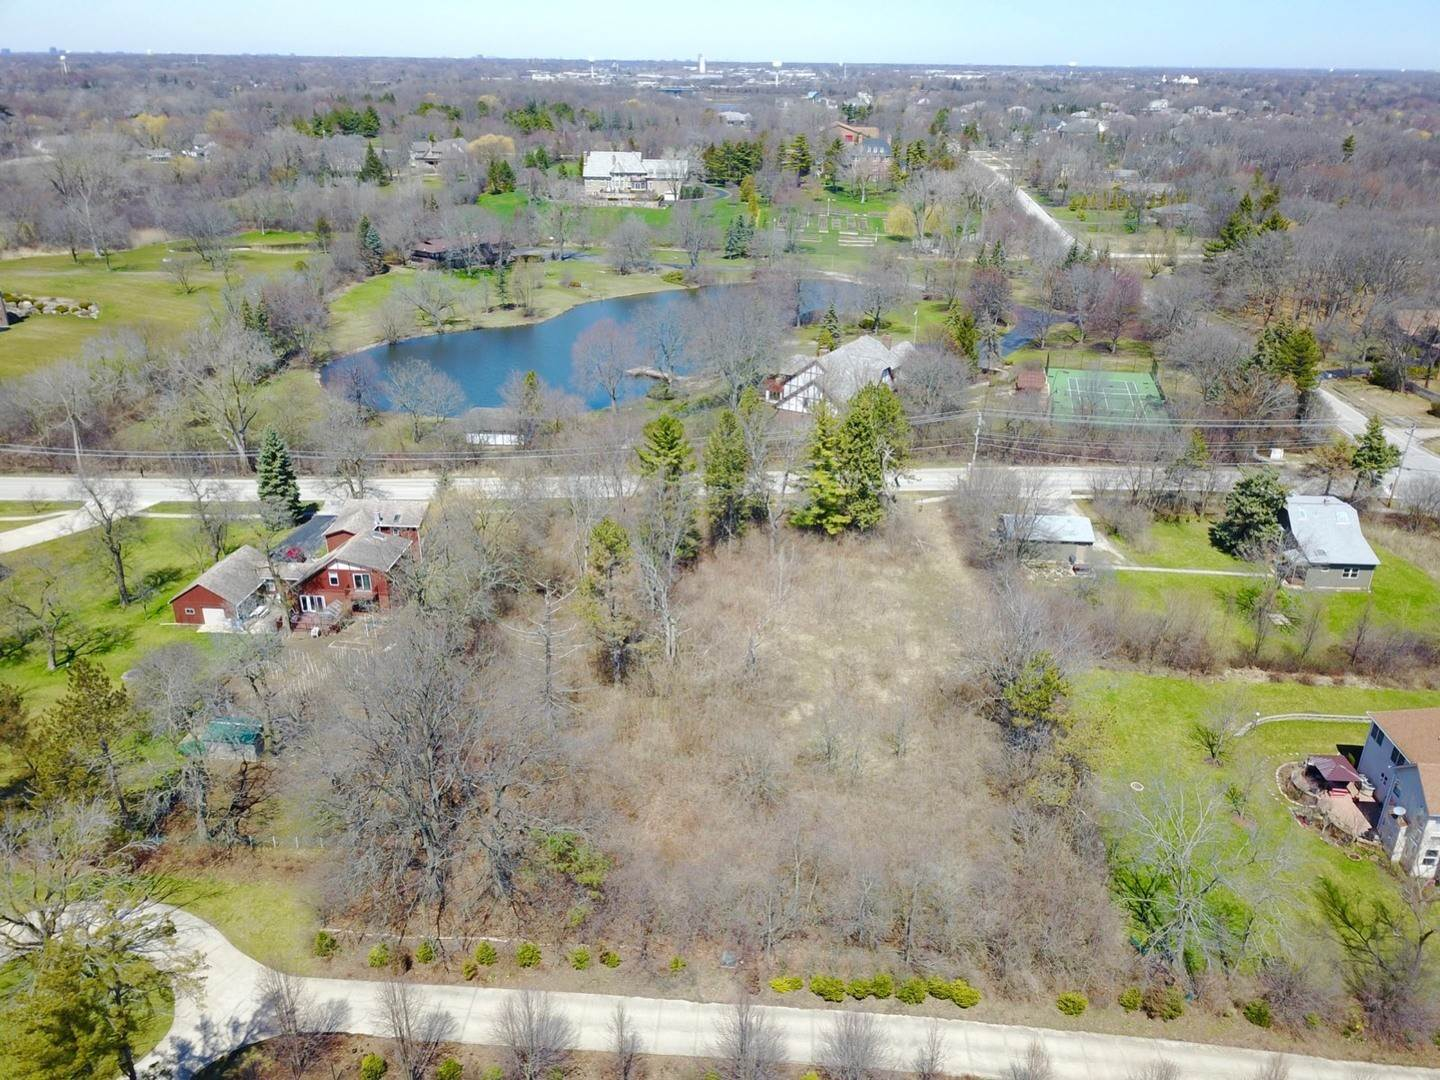 Land for Sale at 16w041 91st Street Hinsdale, Illinois 60521 United States